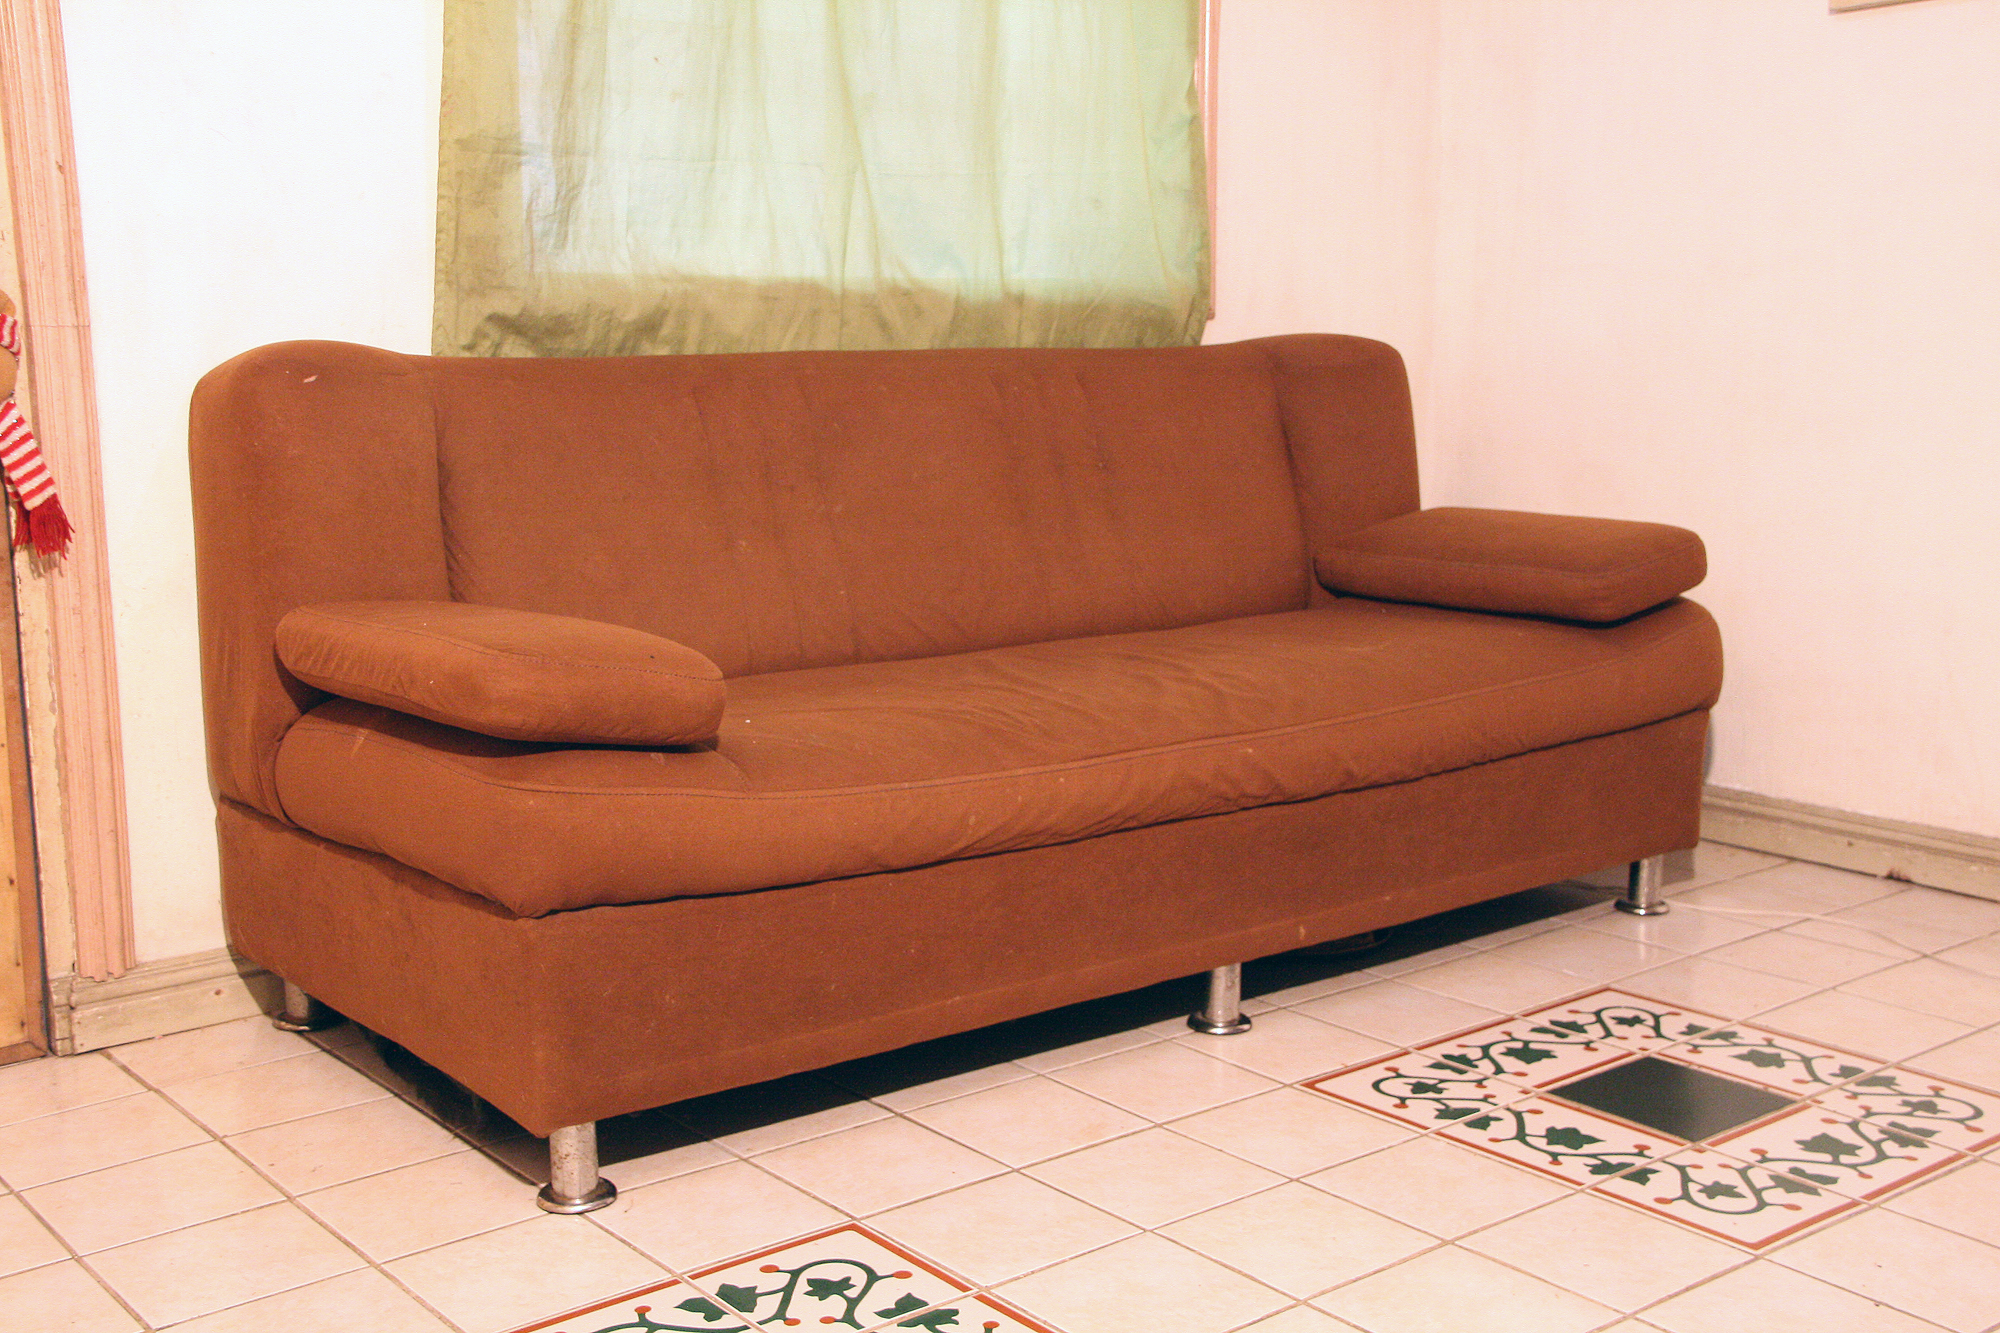 Candy Big Sofa 4 Ways To Get A Stain Out Of A Microfiber Couch Wikihow